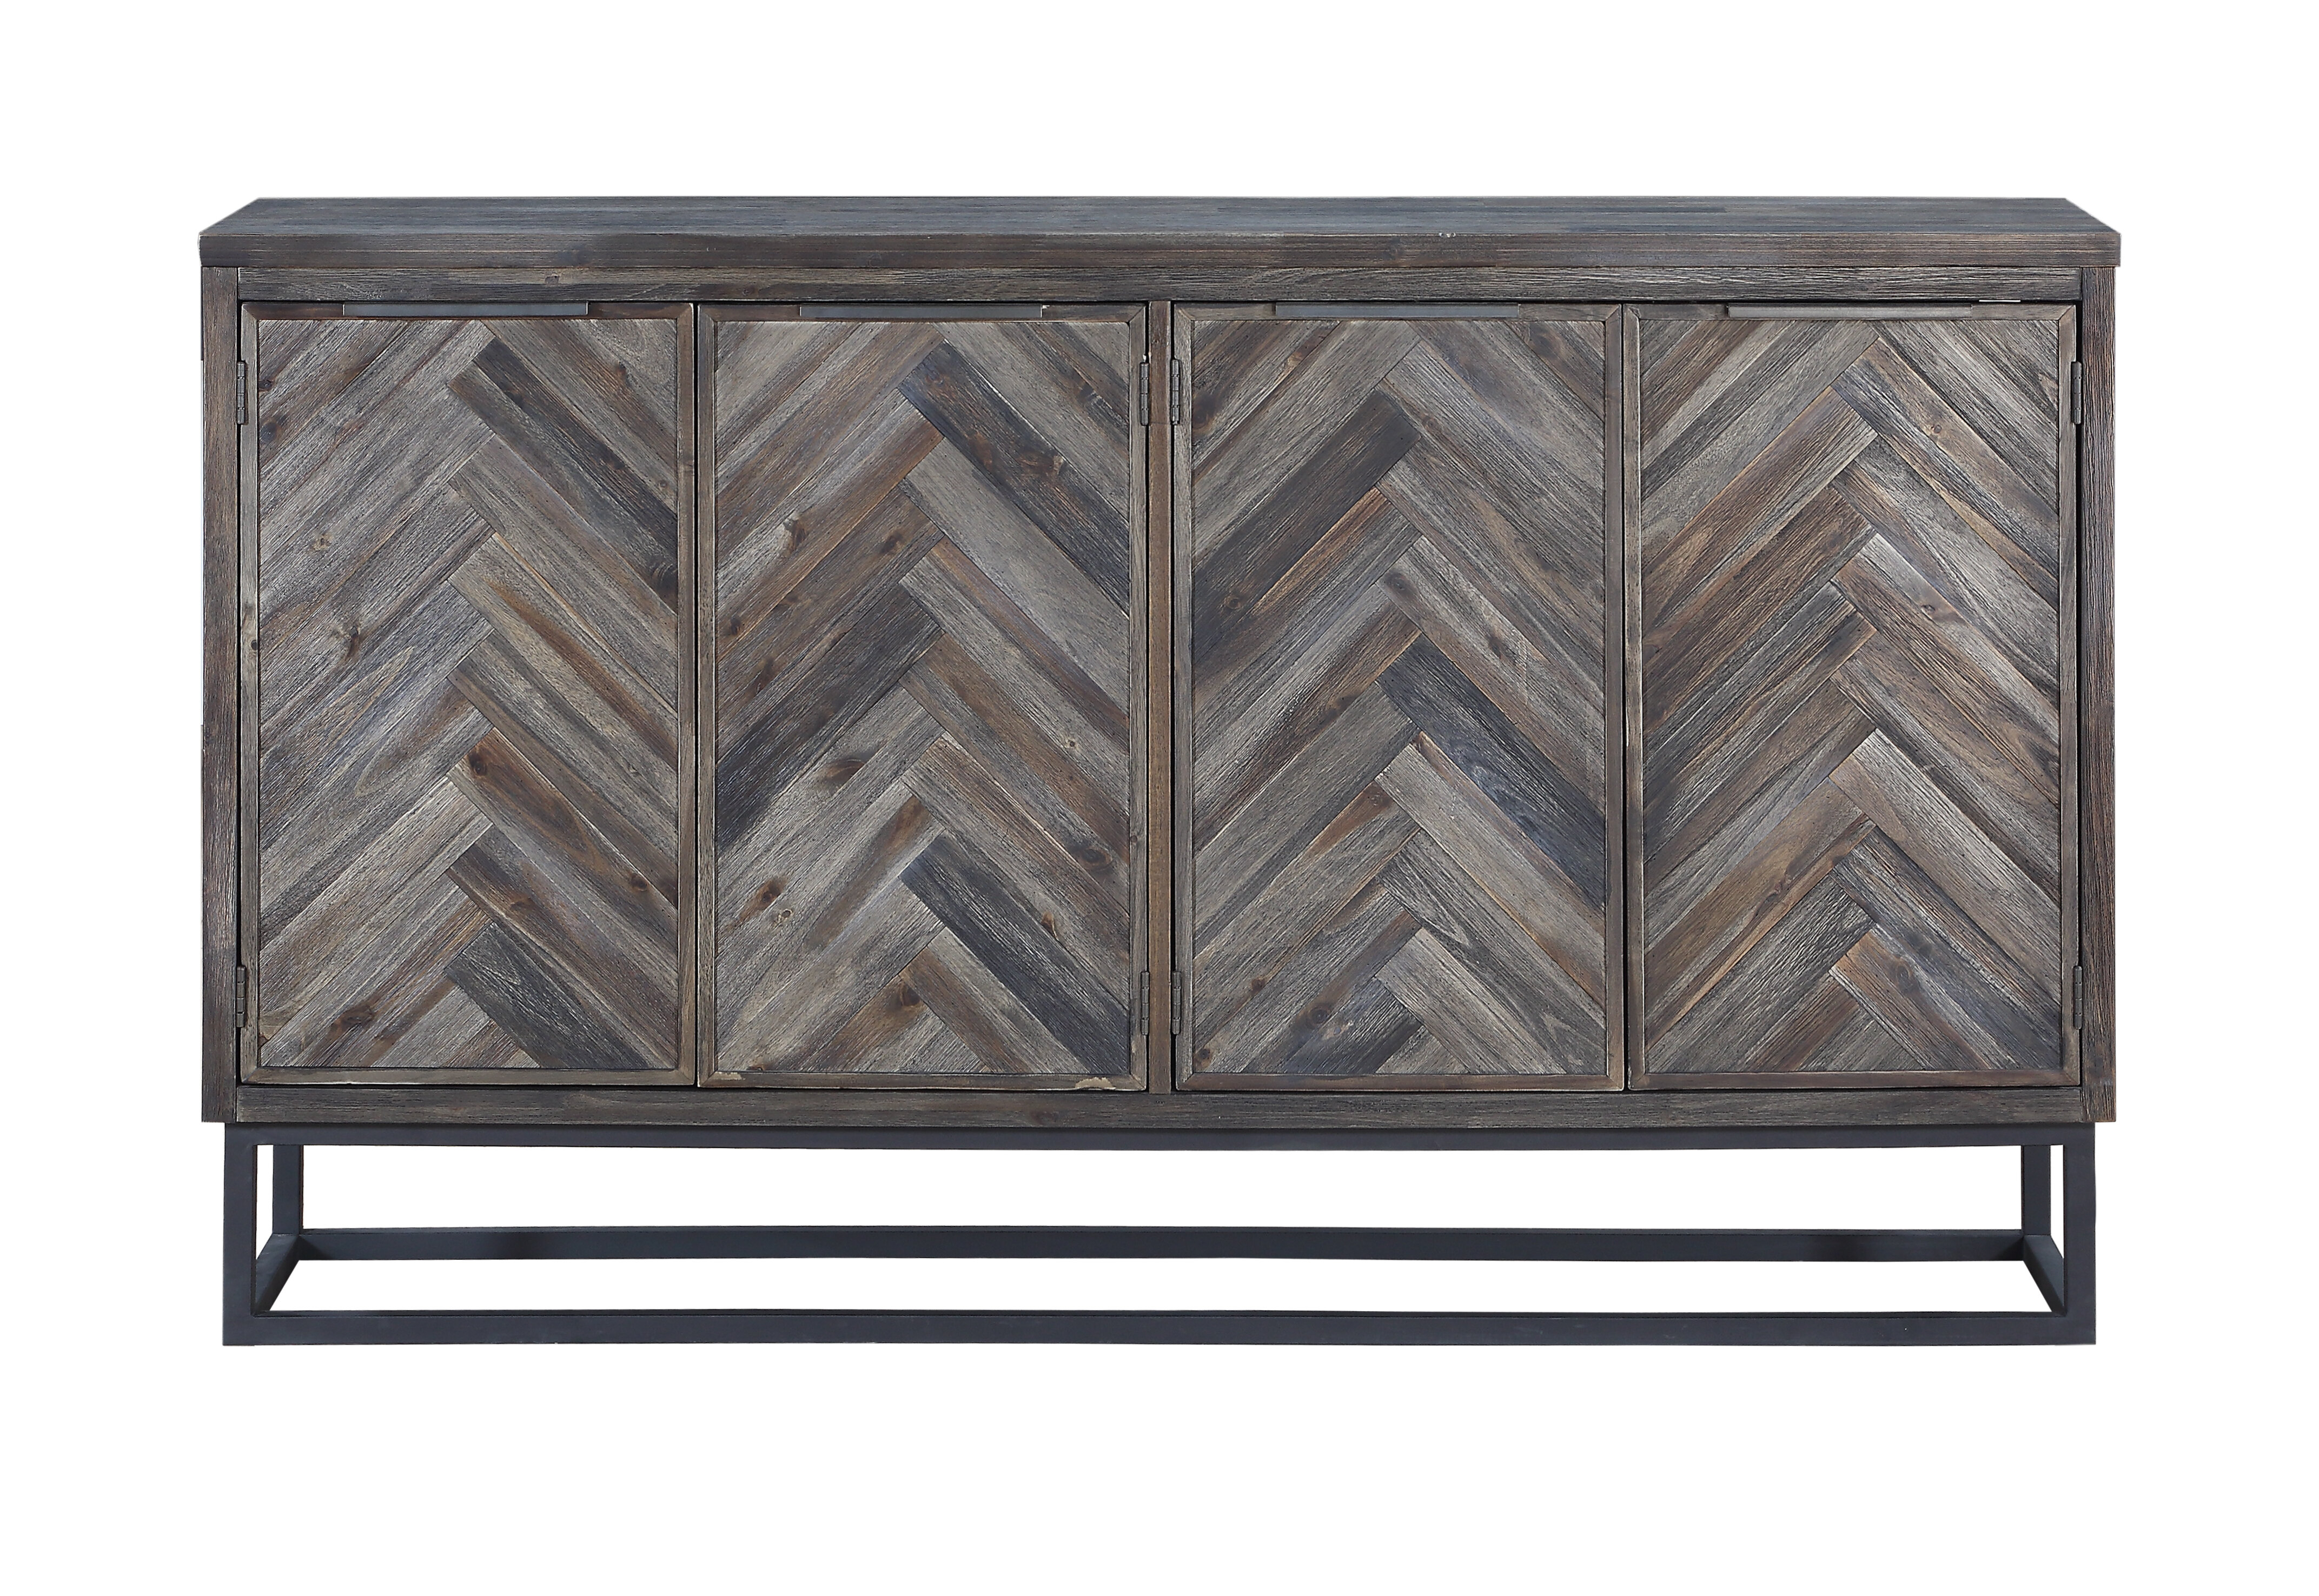 Modern & Contemporary Deny Credenza | Allmodern for Multi Colored Geometric Shapes Credenzas (Image 23 of 30)